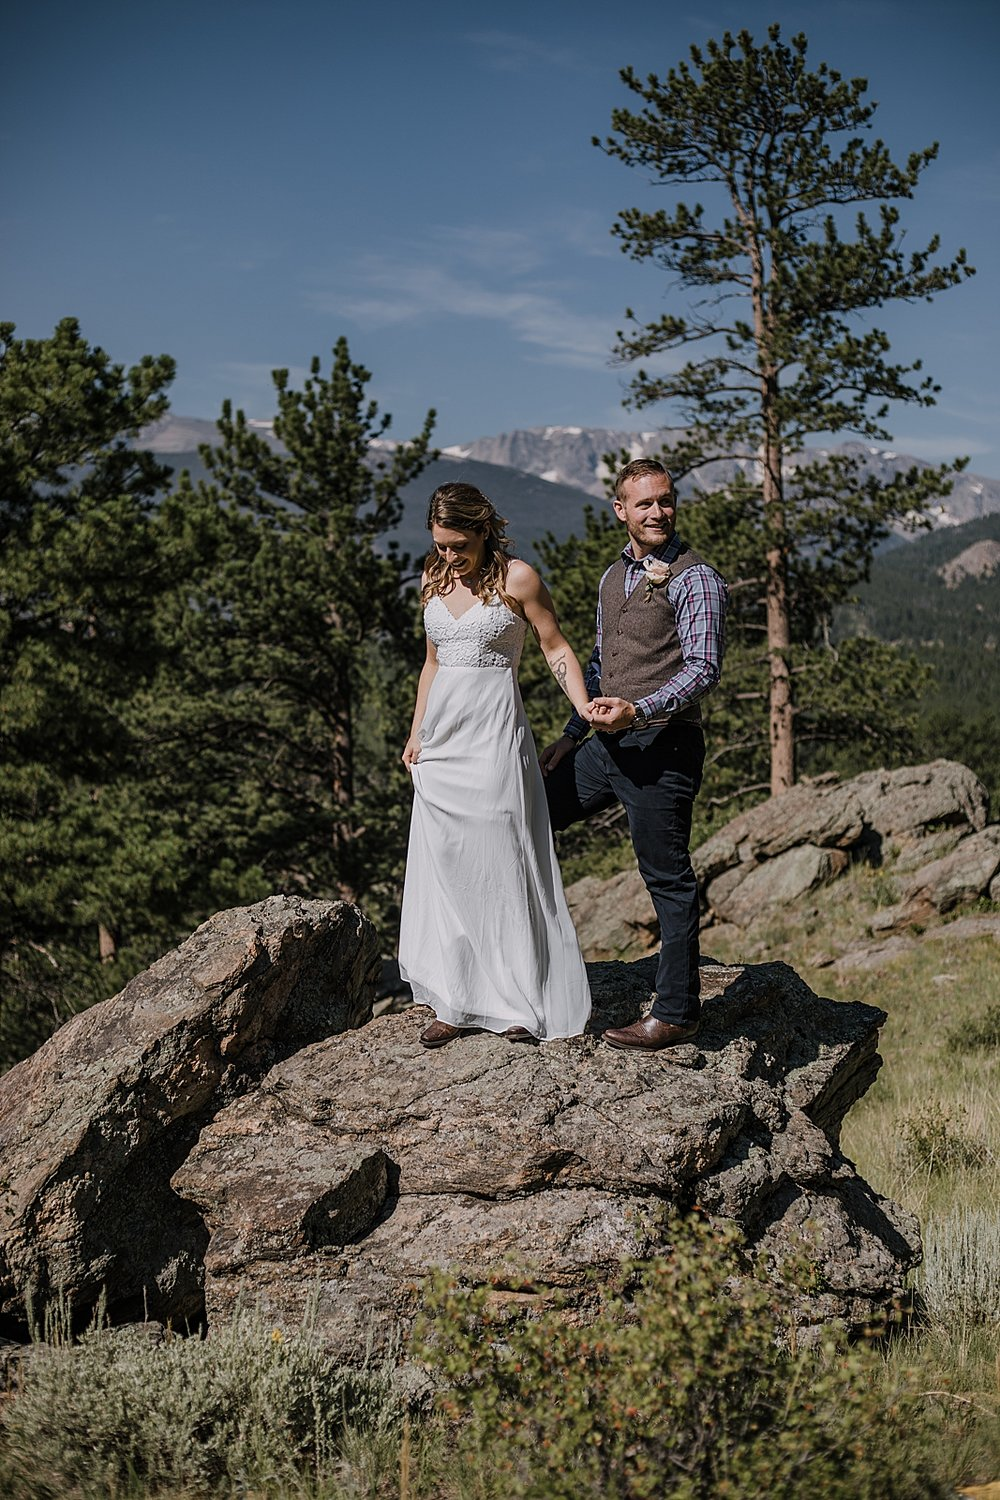 couple hiking, RMNP elopement ceremony, rocky mountain national park elopement, 3M curves elopement, self solemnizing, self solemnization, long's peak, hiking elopement, estes park elopement